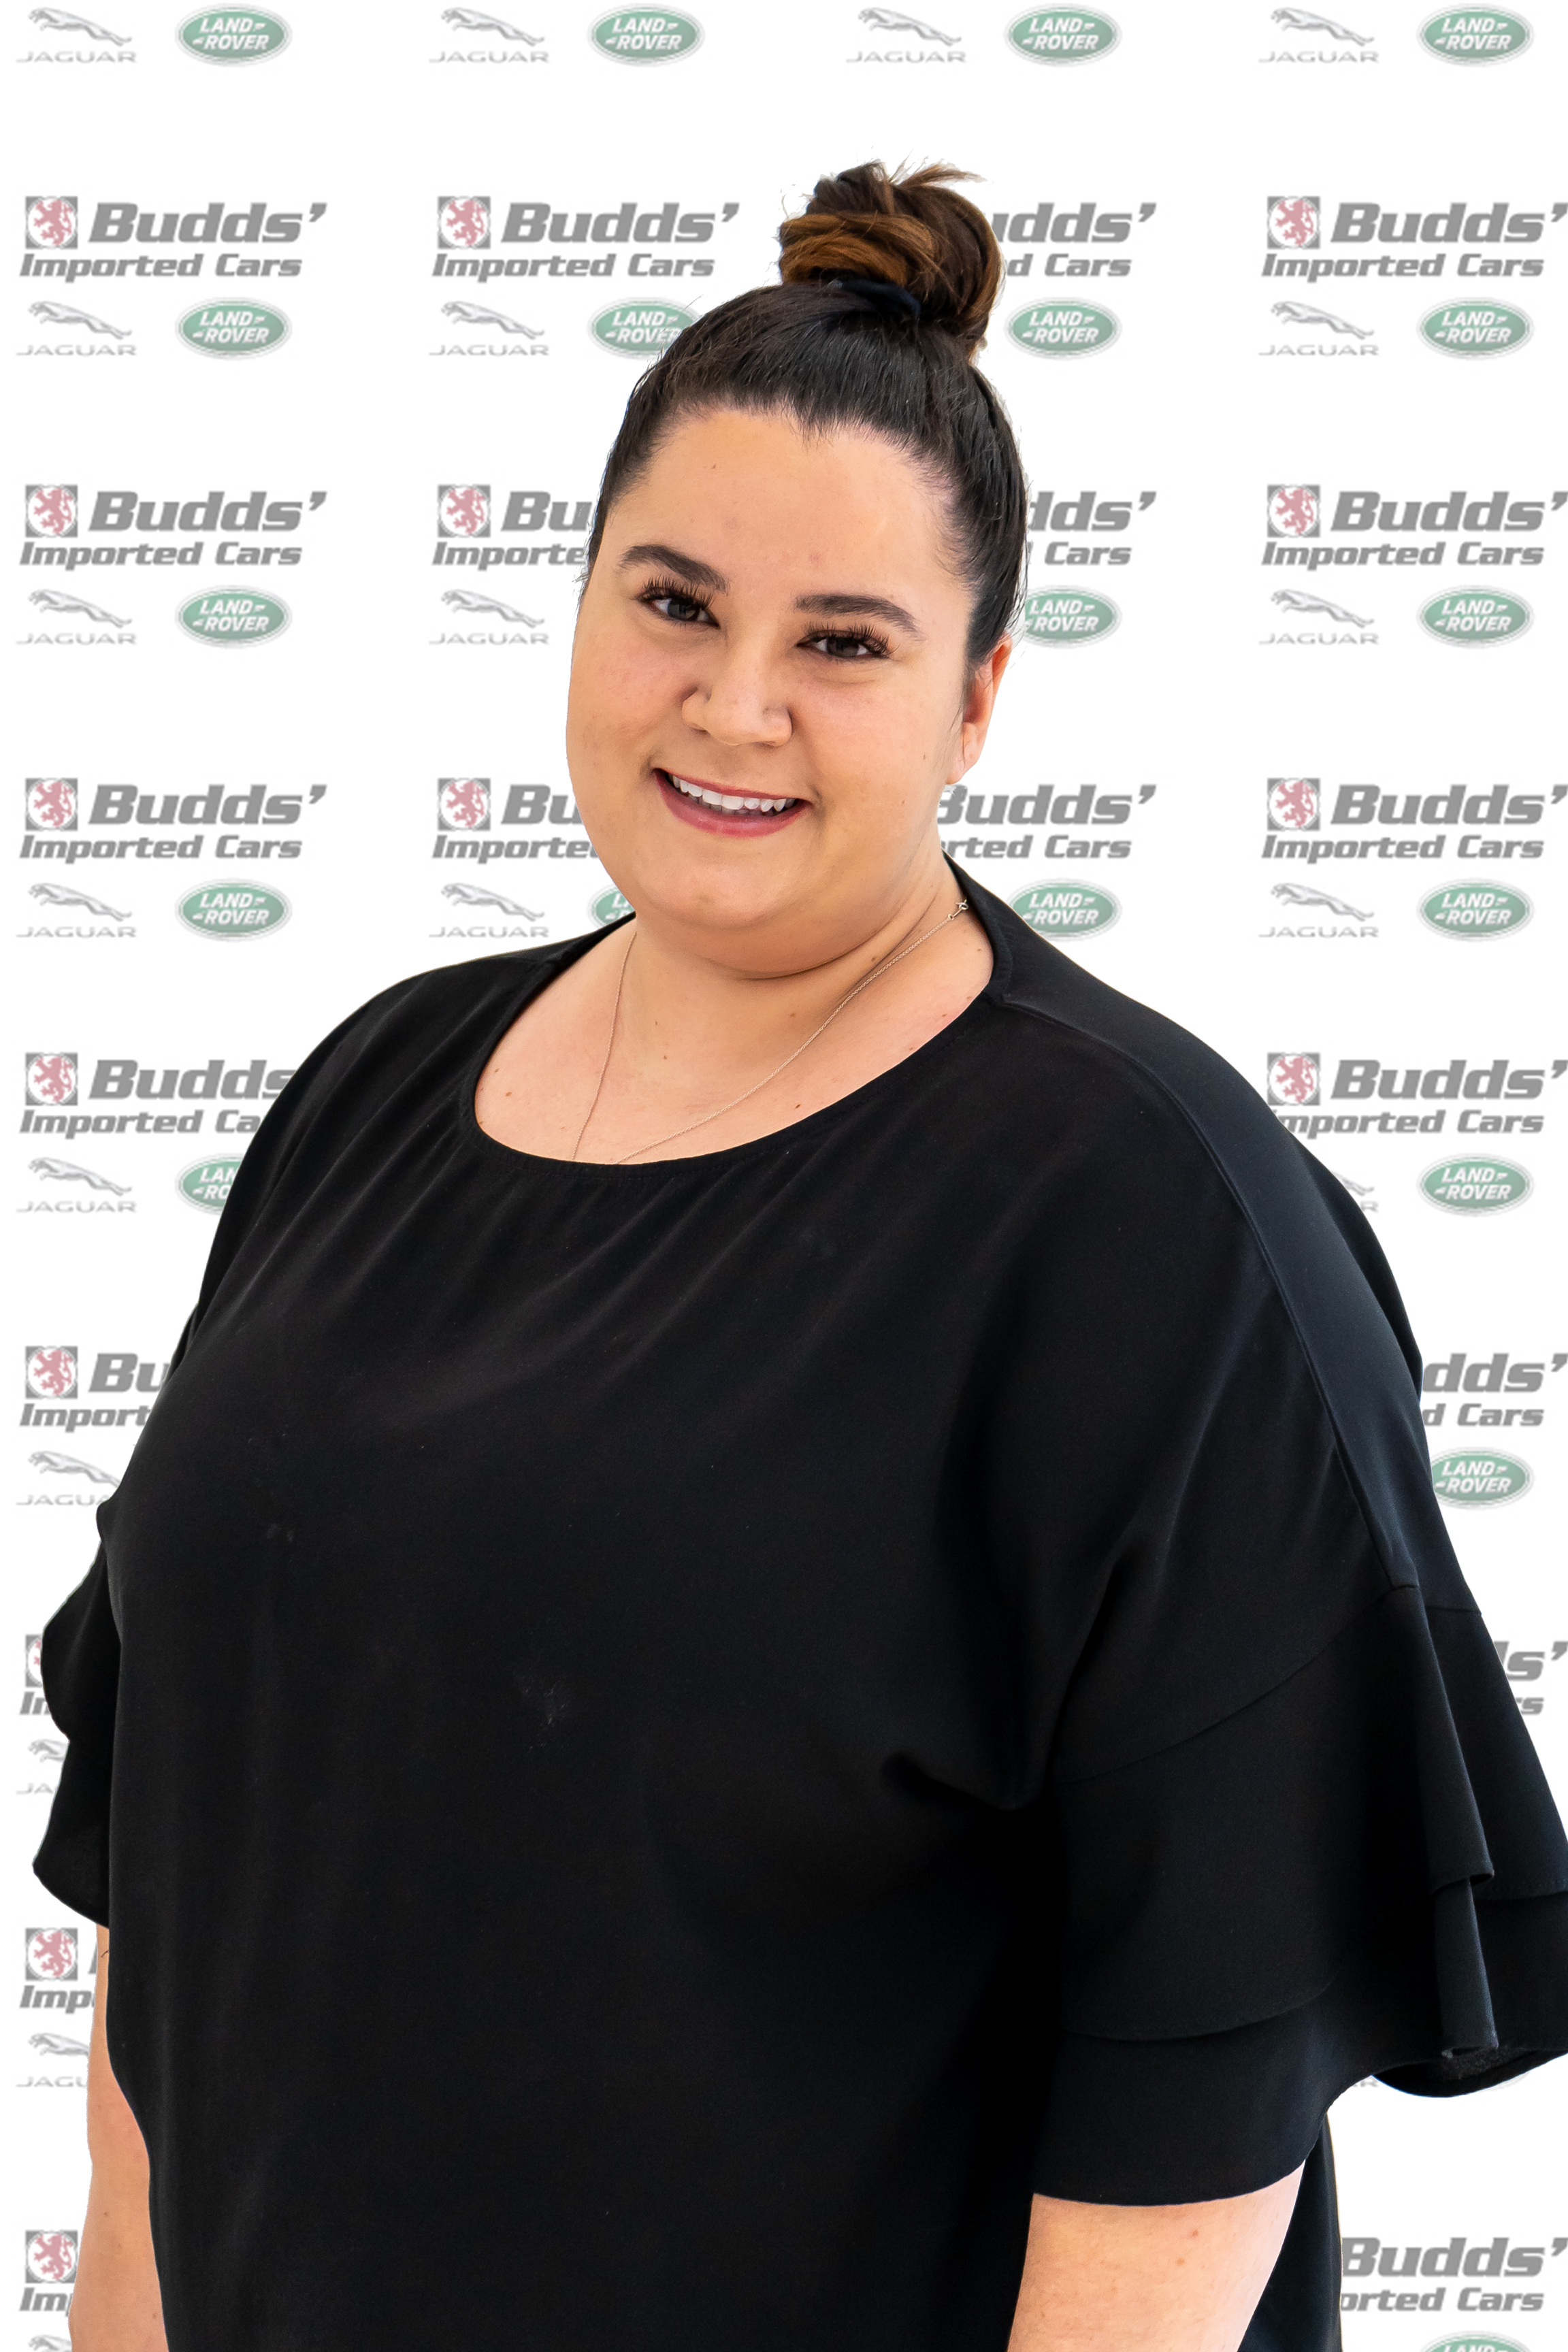 Suse Botelho - Appointment Coordinator